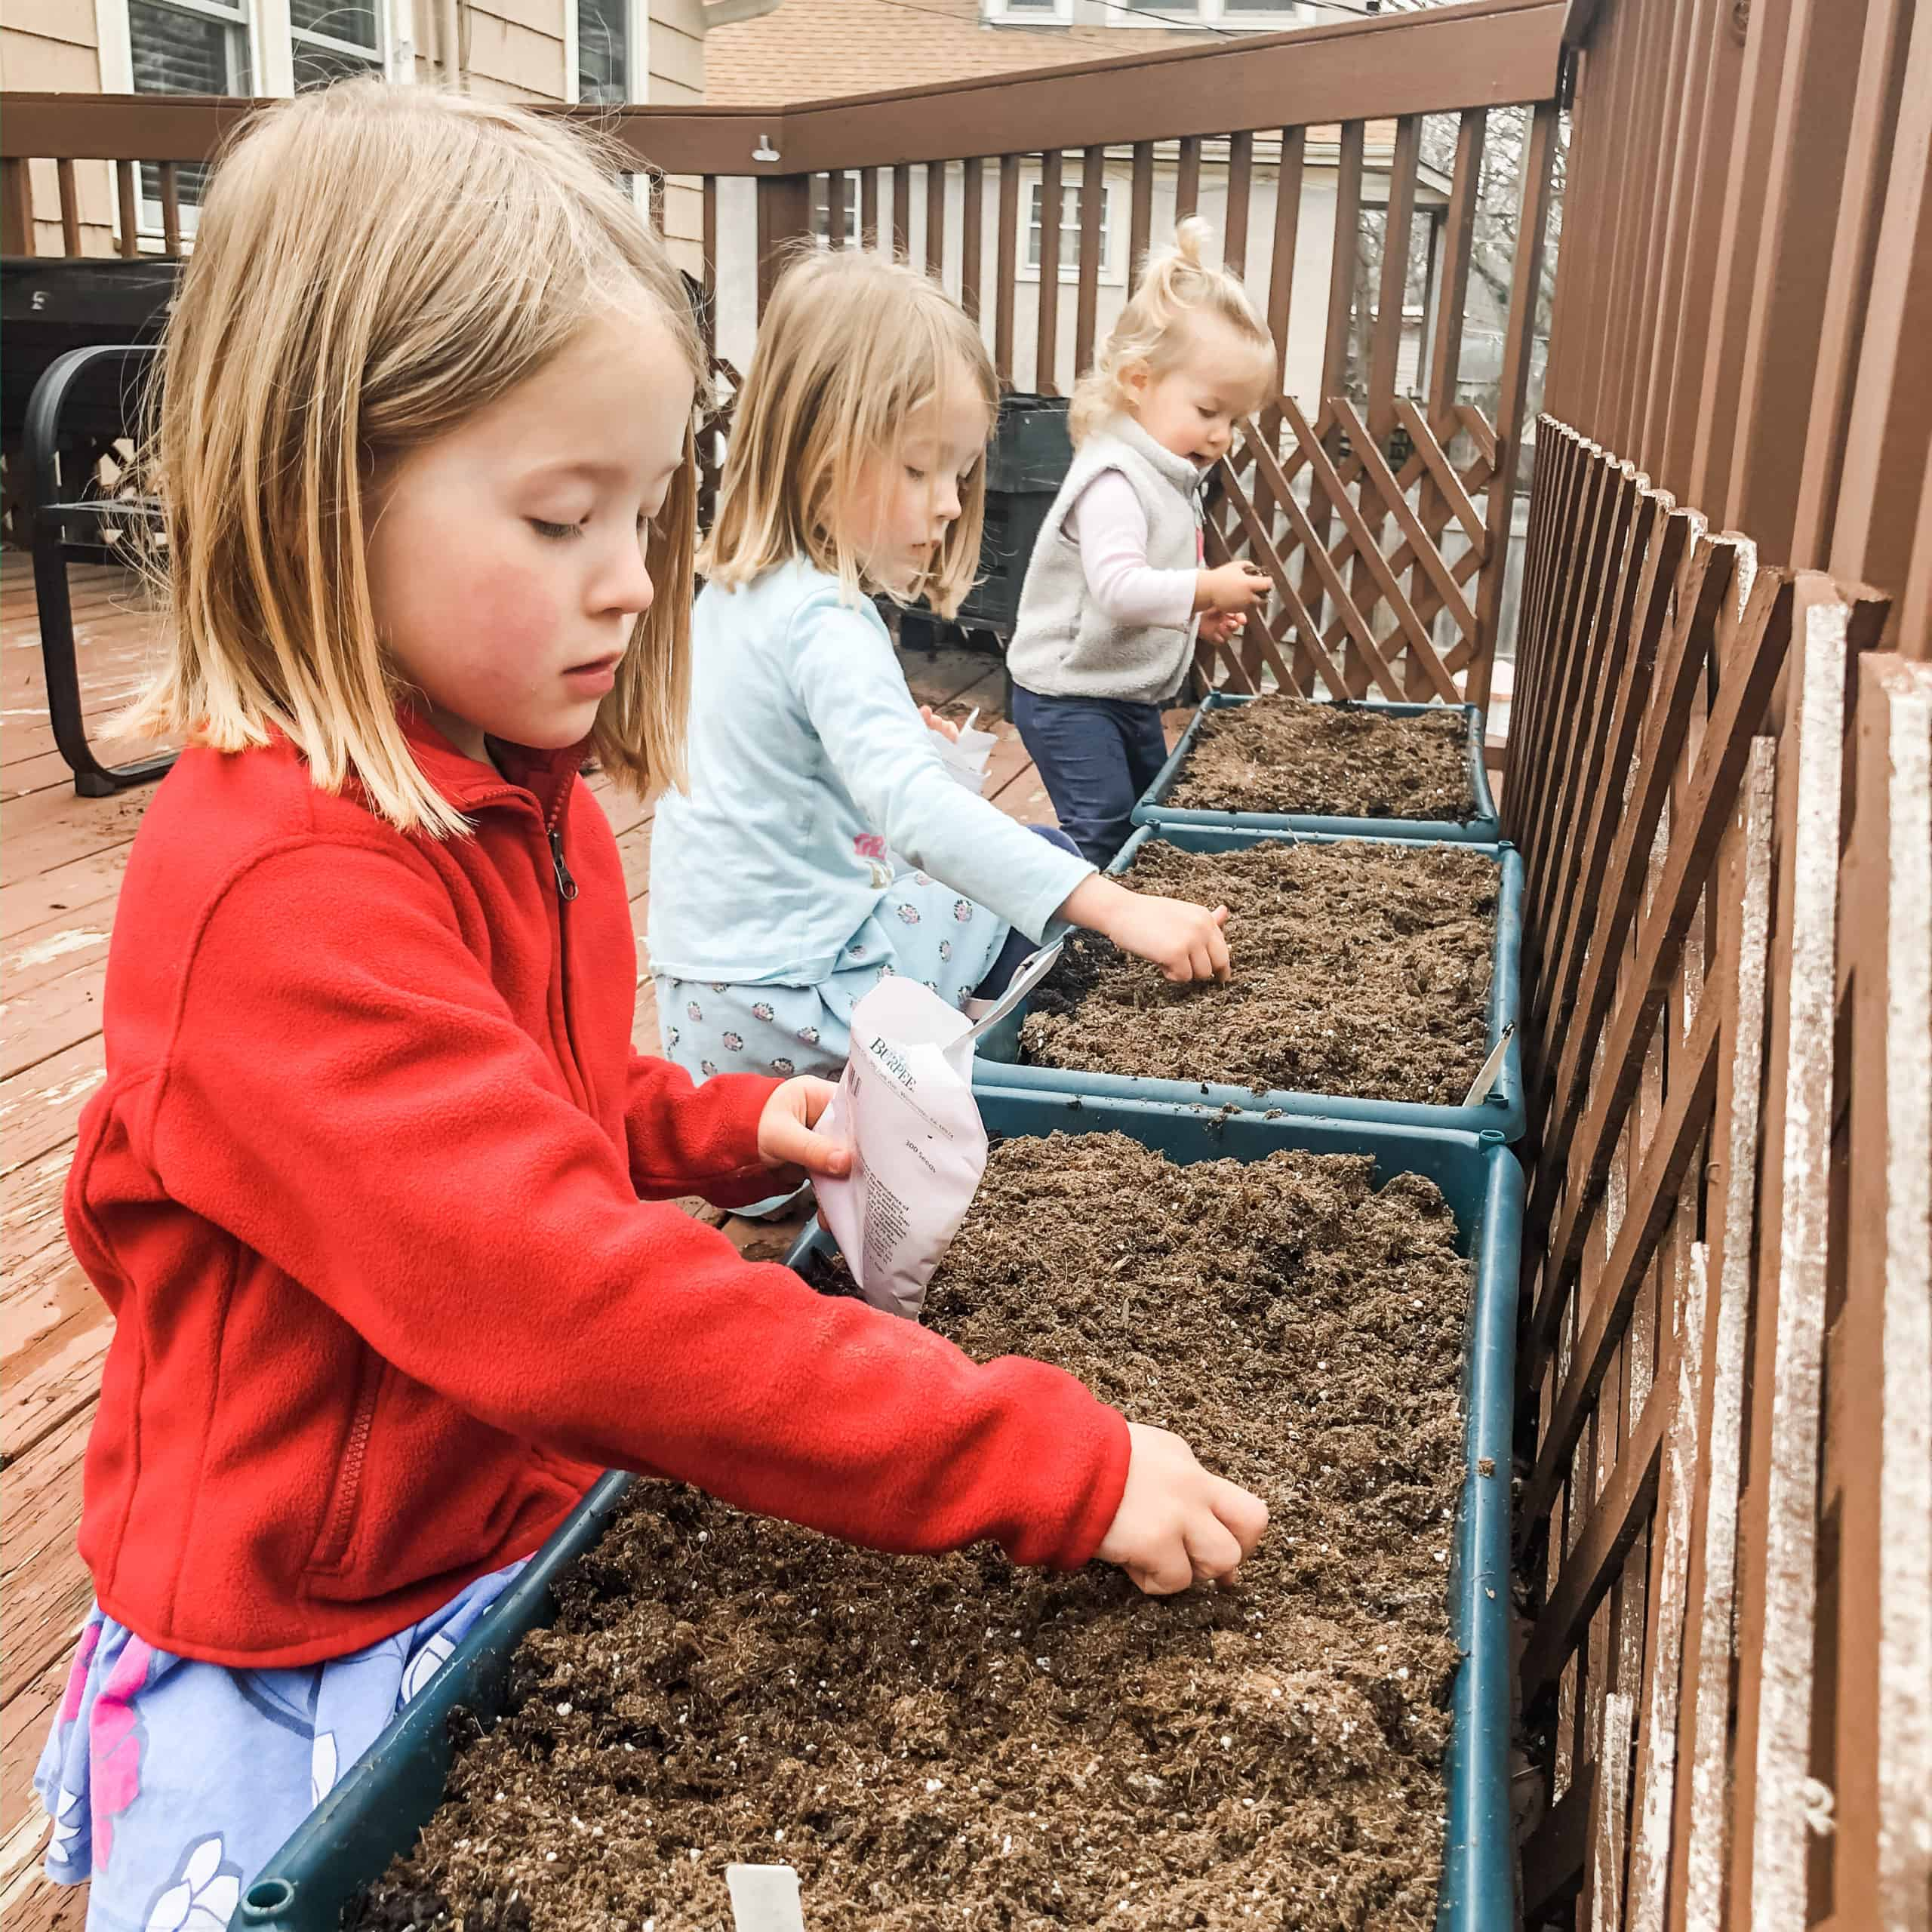 2 young girls and a toddler plant seeds in raised garden beds